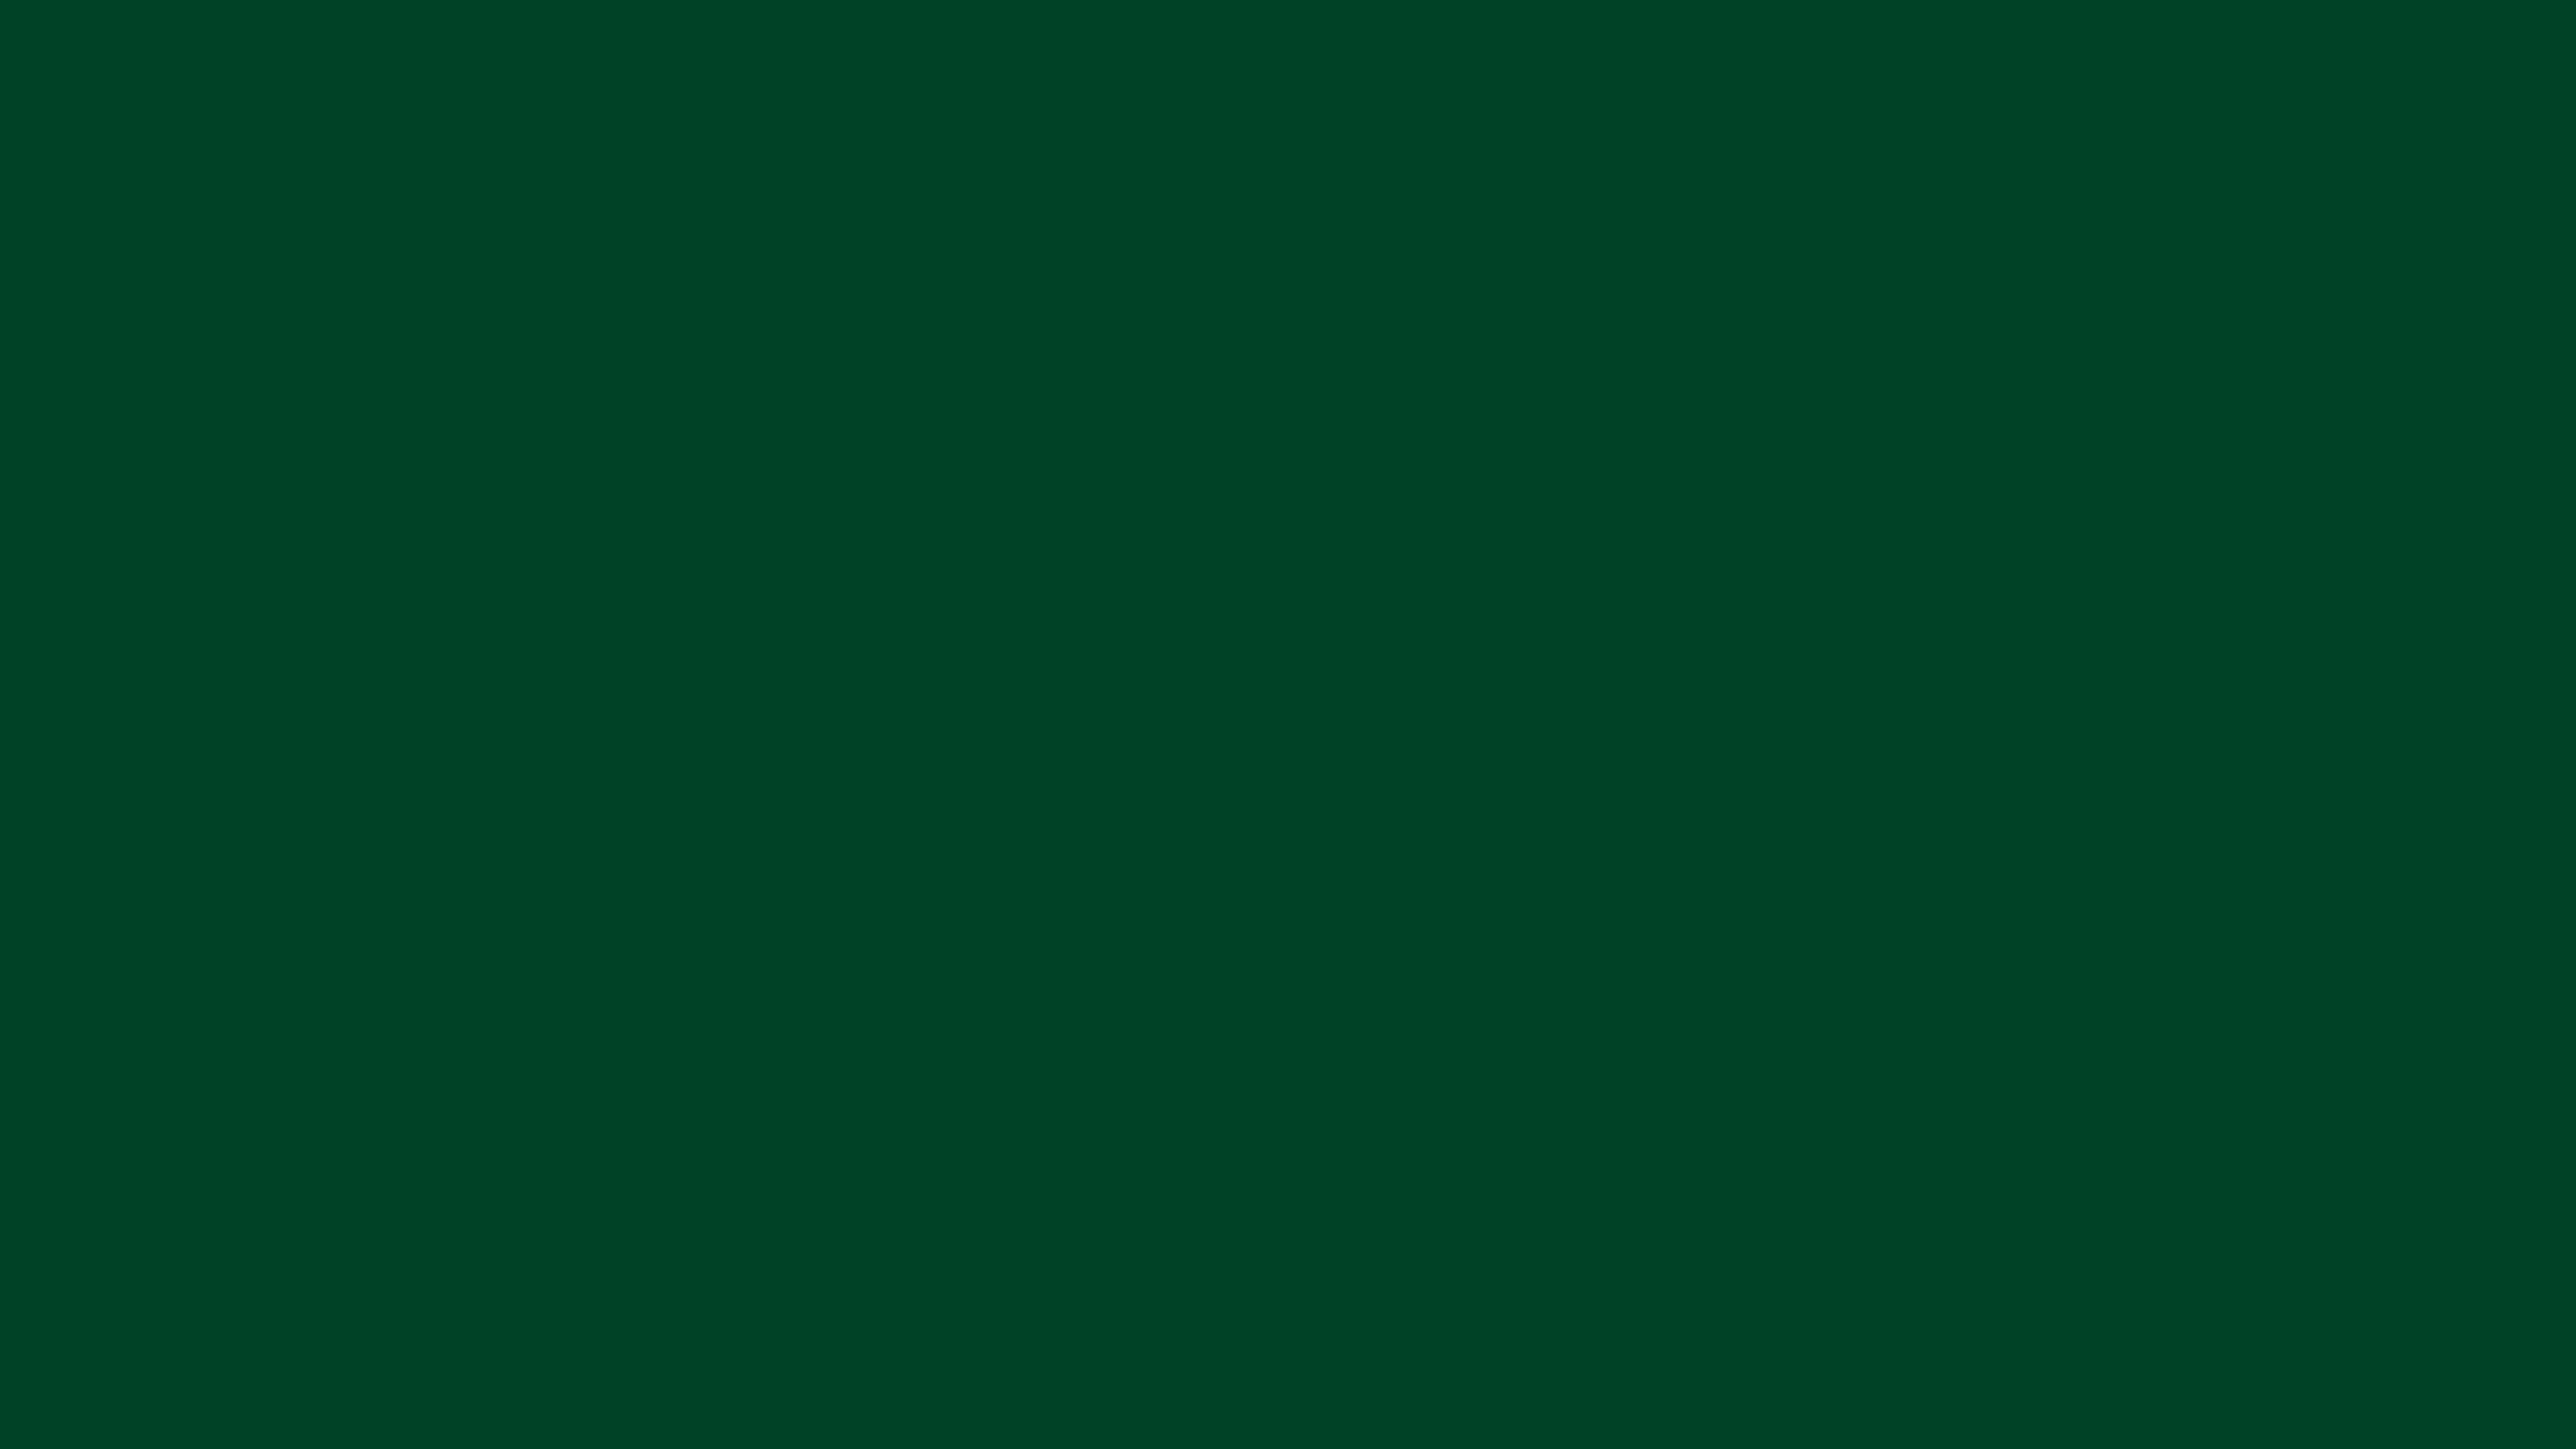 4096x2304 British Racing Green Solid Color Background